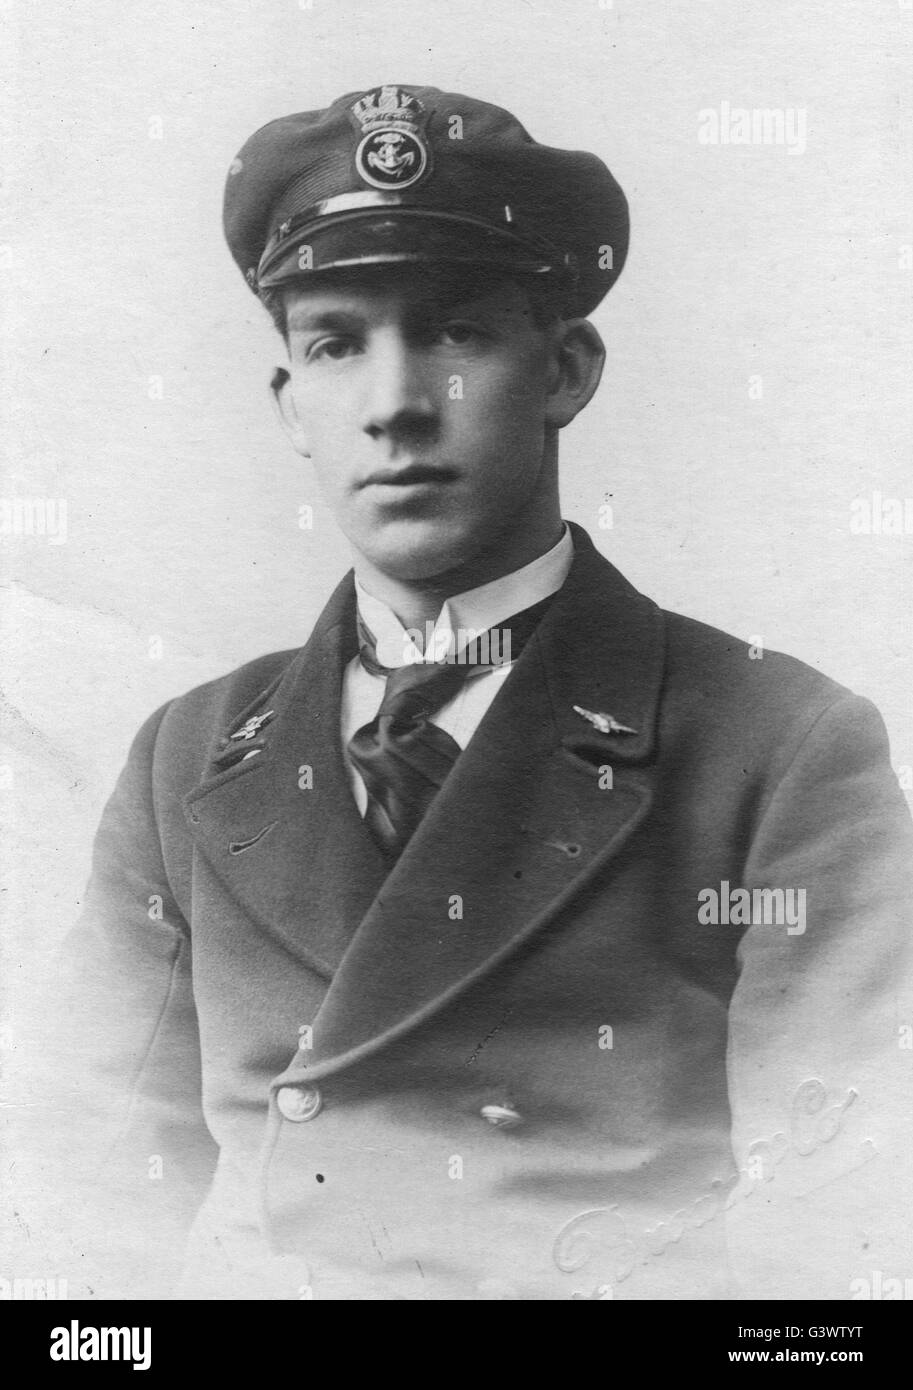 Royal Navy airman in uniform  WW1 - Stock Image